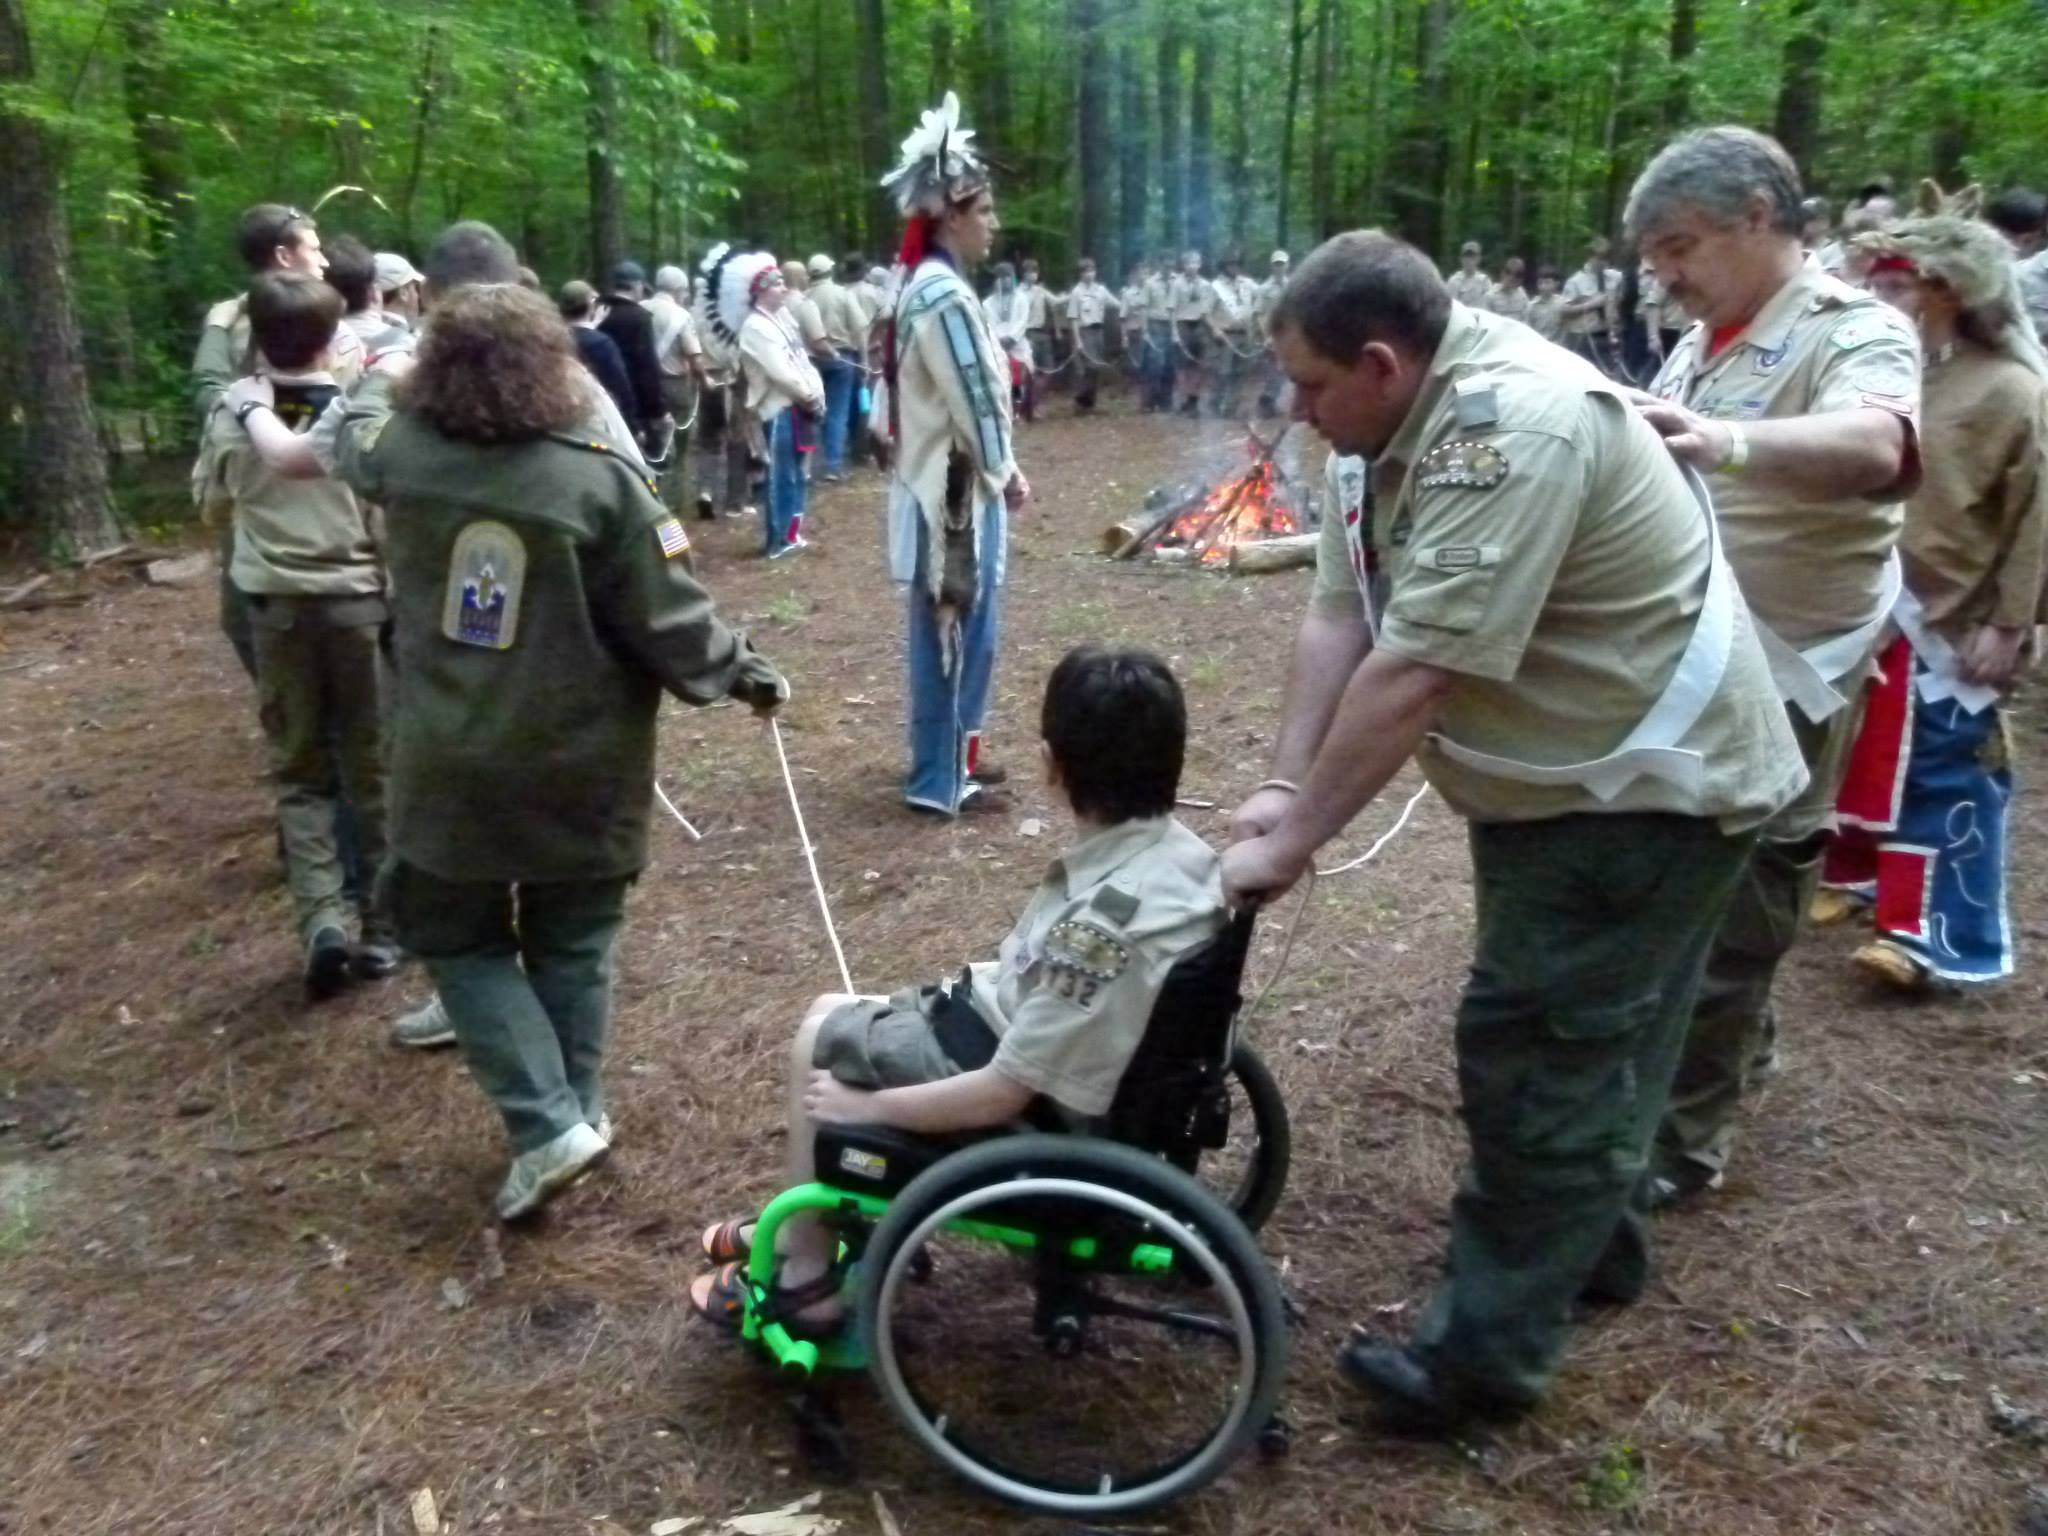 Michael Findlay helps his son, Sam, navigate the Ordeal Ceremony at Camp Sequoyah. (Photo: Jana Mayhall)